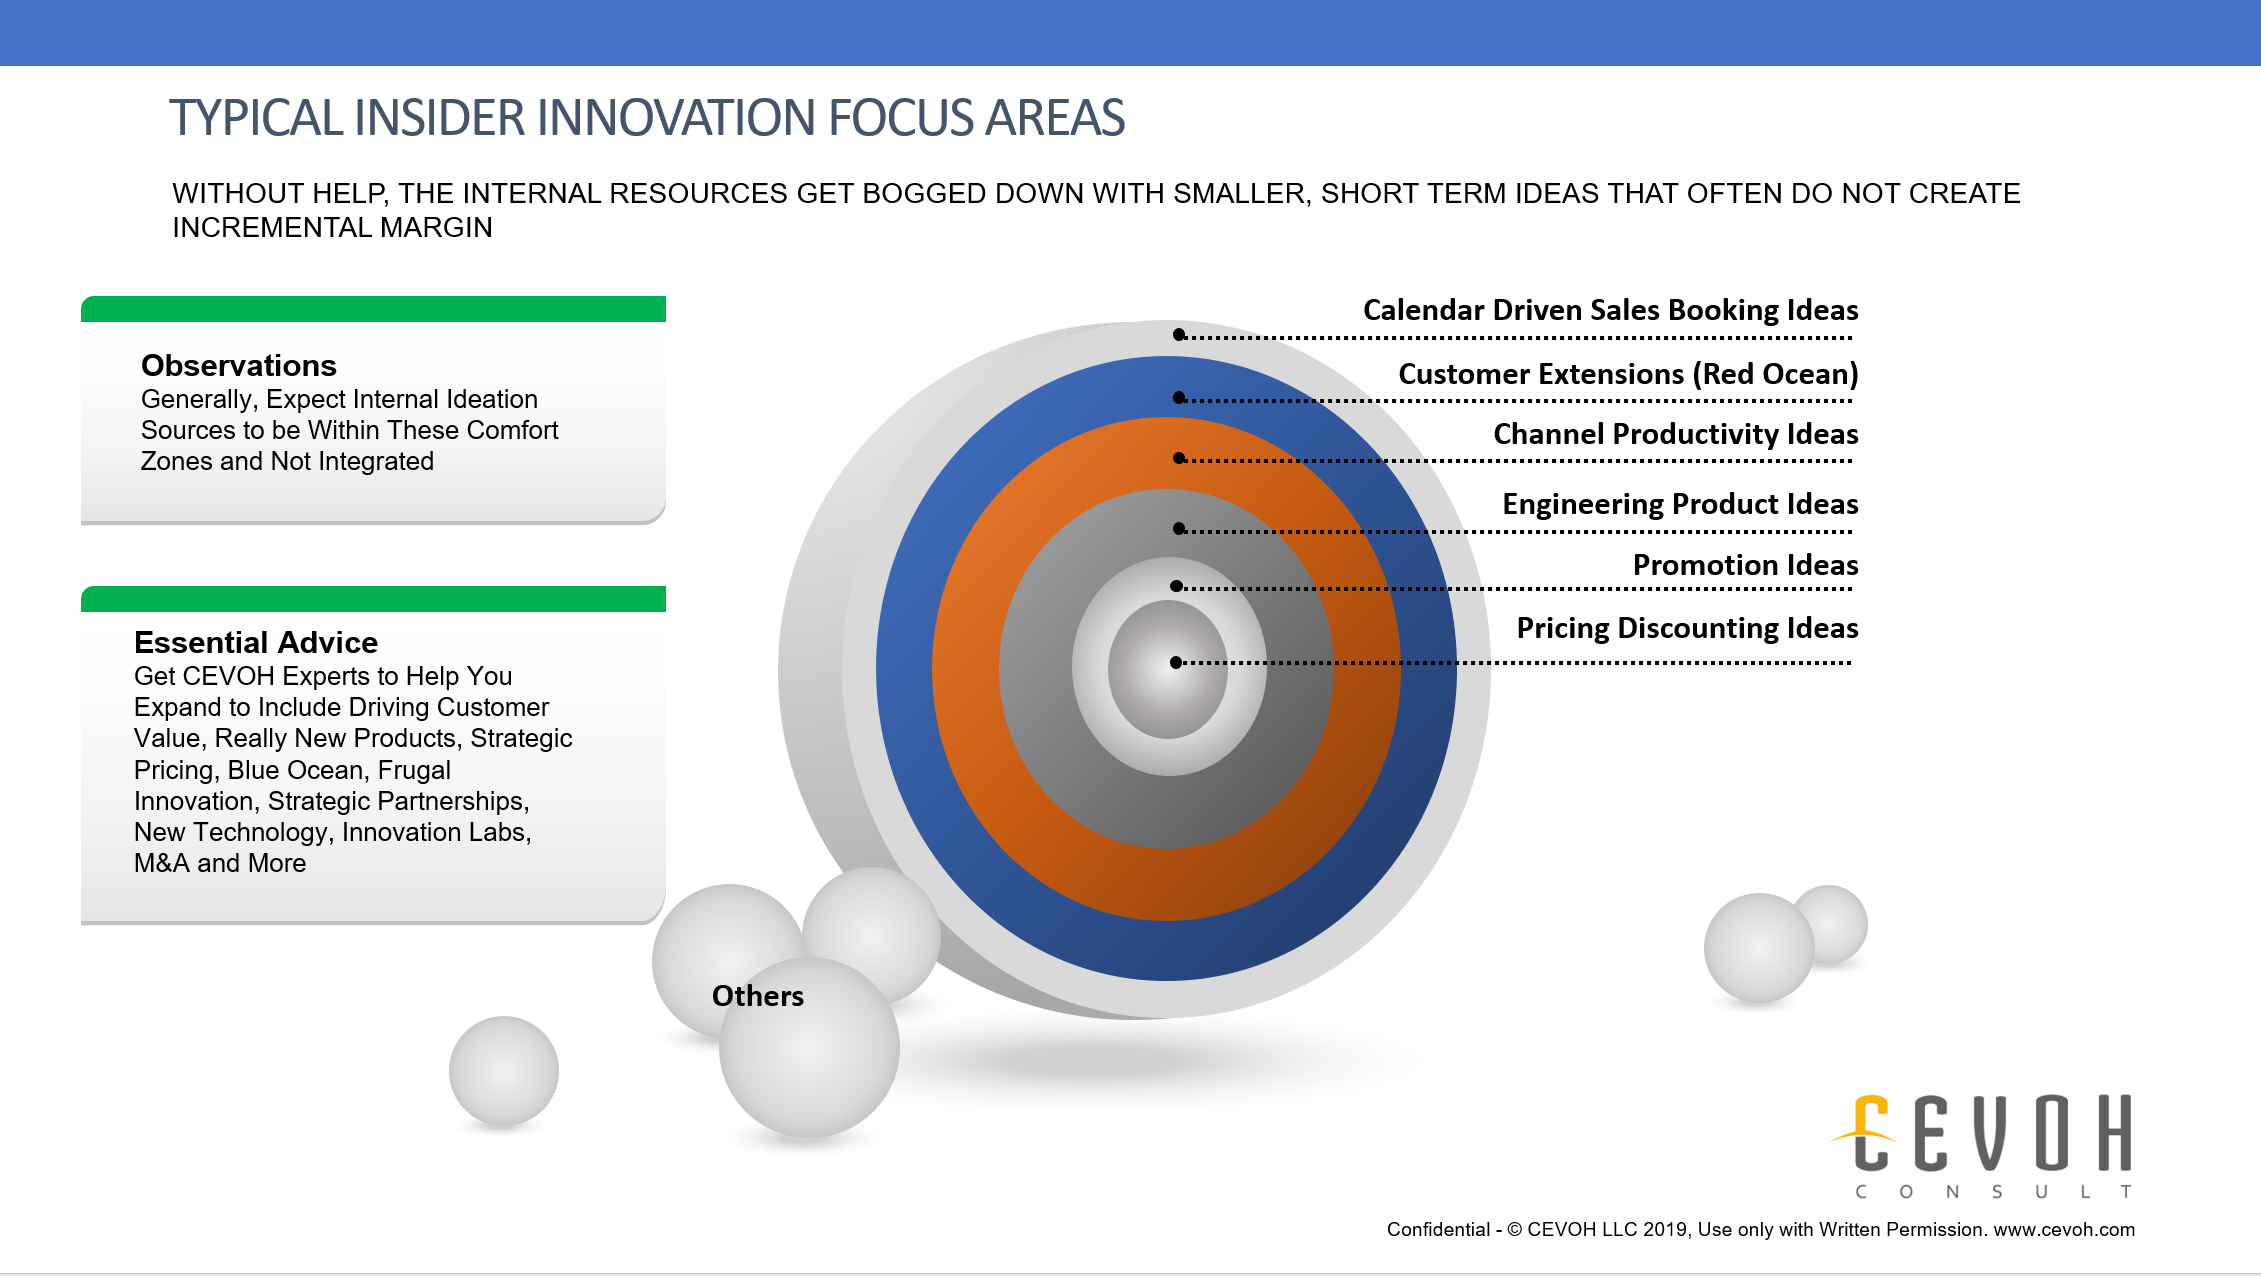 """Without help from CEVOH, a typical organization will only create innovative ideas from less desirable areas. In some cases, the areas in this slide may produce some incremental revenue, but in most cases they do not create much incremental margin. Often we find these ideas have been used over and over, and the absorb critical internal resources. Studies have shown that we all """"tend to ideate close to home"""" meaning we come up with ideas that are very comfortable to our own world. CEVOH efforts disrupt this tendency by bringing the right """"trained brains"""" to help your internal team - and ultimately come up with much better ideas, more ideas, and tempered (ready for market) ideas. If you don't bring in an outside team like CEVOH to help you innovate, often the result are ideas that do not create any incremental customer value. Without incremental customer value creation, incremental revenue cannot be sustained."""